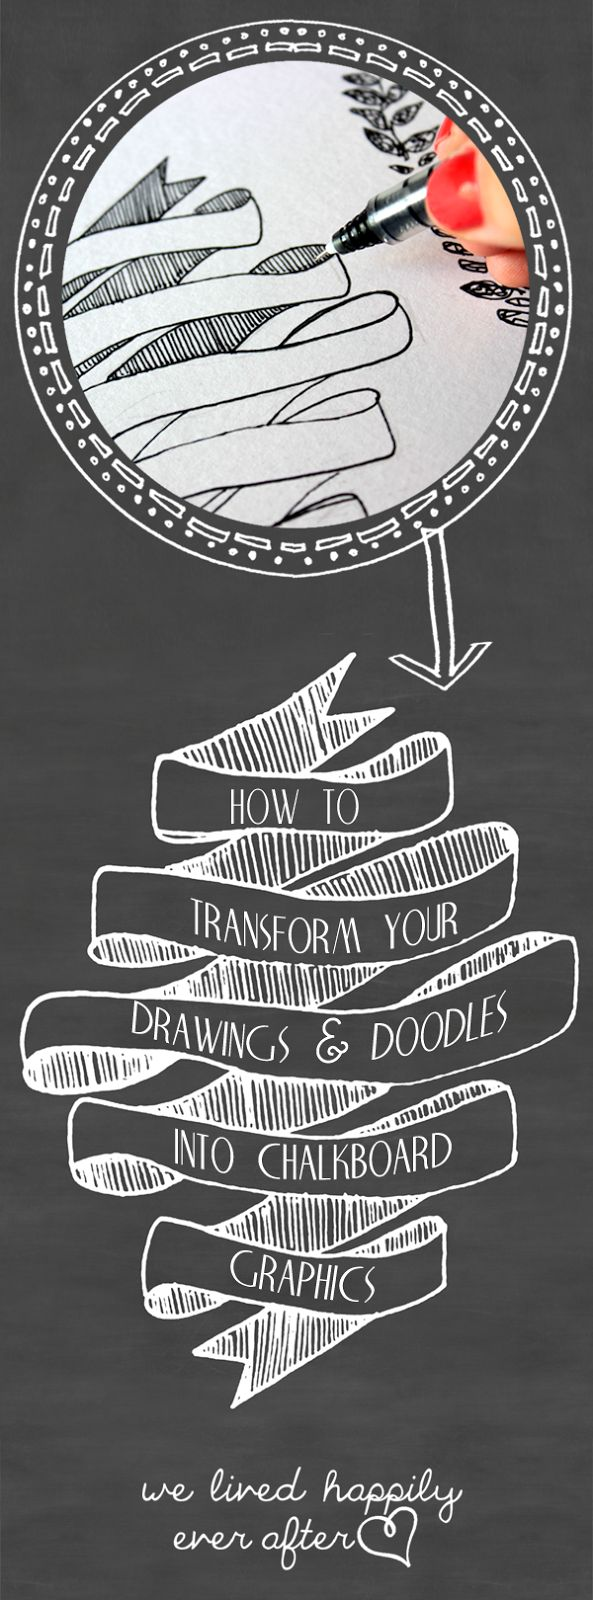 We Lived Happily Ever After: Transfer your Writing, Drawings & Doodles into Chalkboard Graphics & Printables Using Photoshop! Yes make Chalkboard labels with this Howto :)